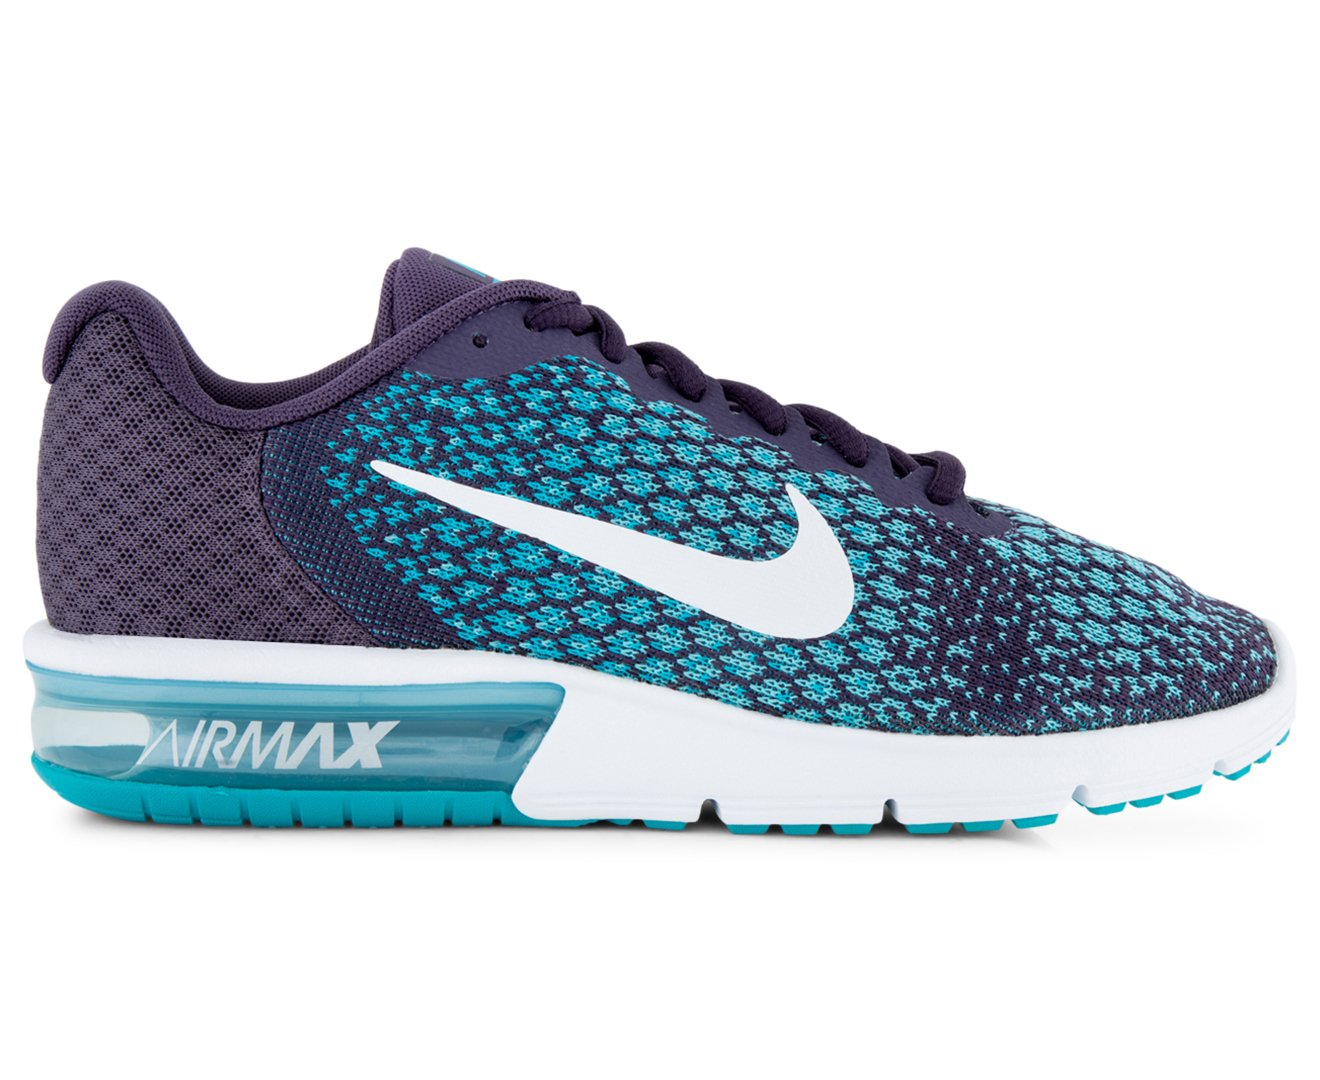 Nike Air Max Sequent 2 Womens Style: 852465-500 Size: 9.5 M US